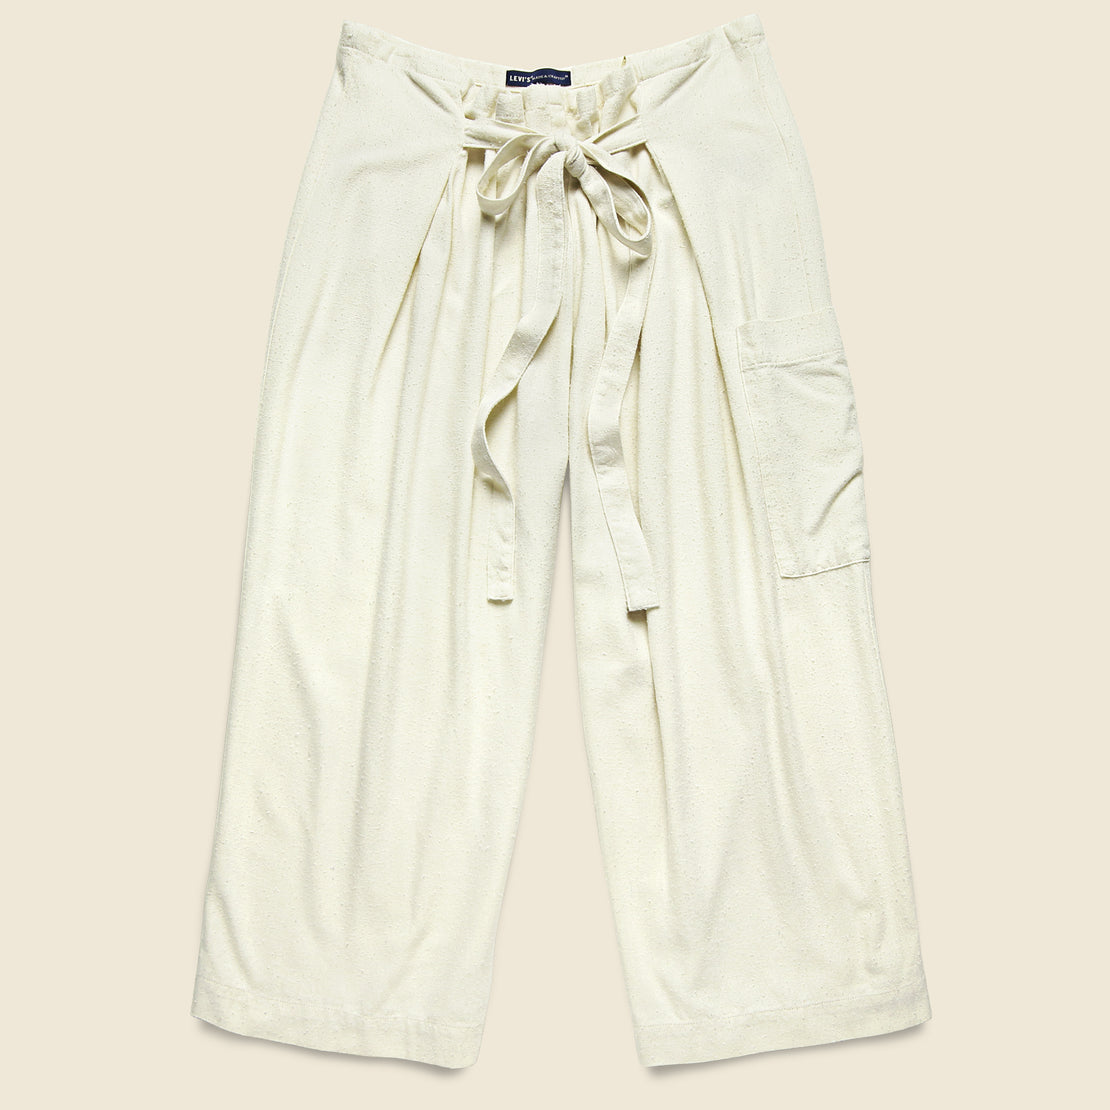 804a41f7f2 Levis Made & Crafted Beach Pant - Pristine Silk ...